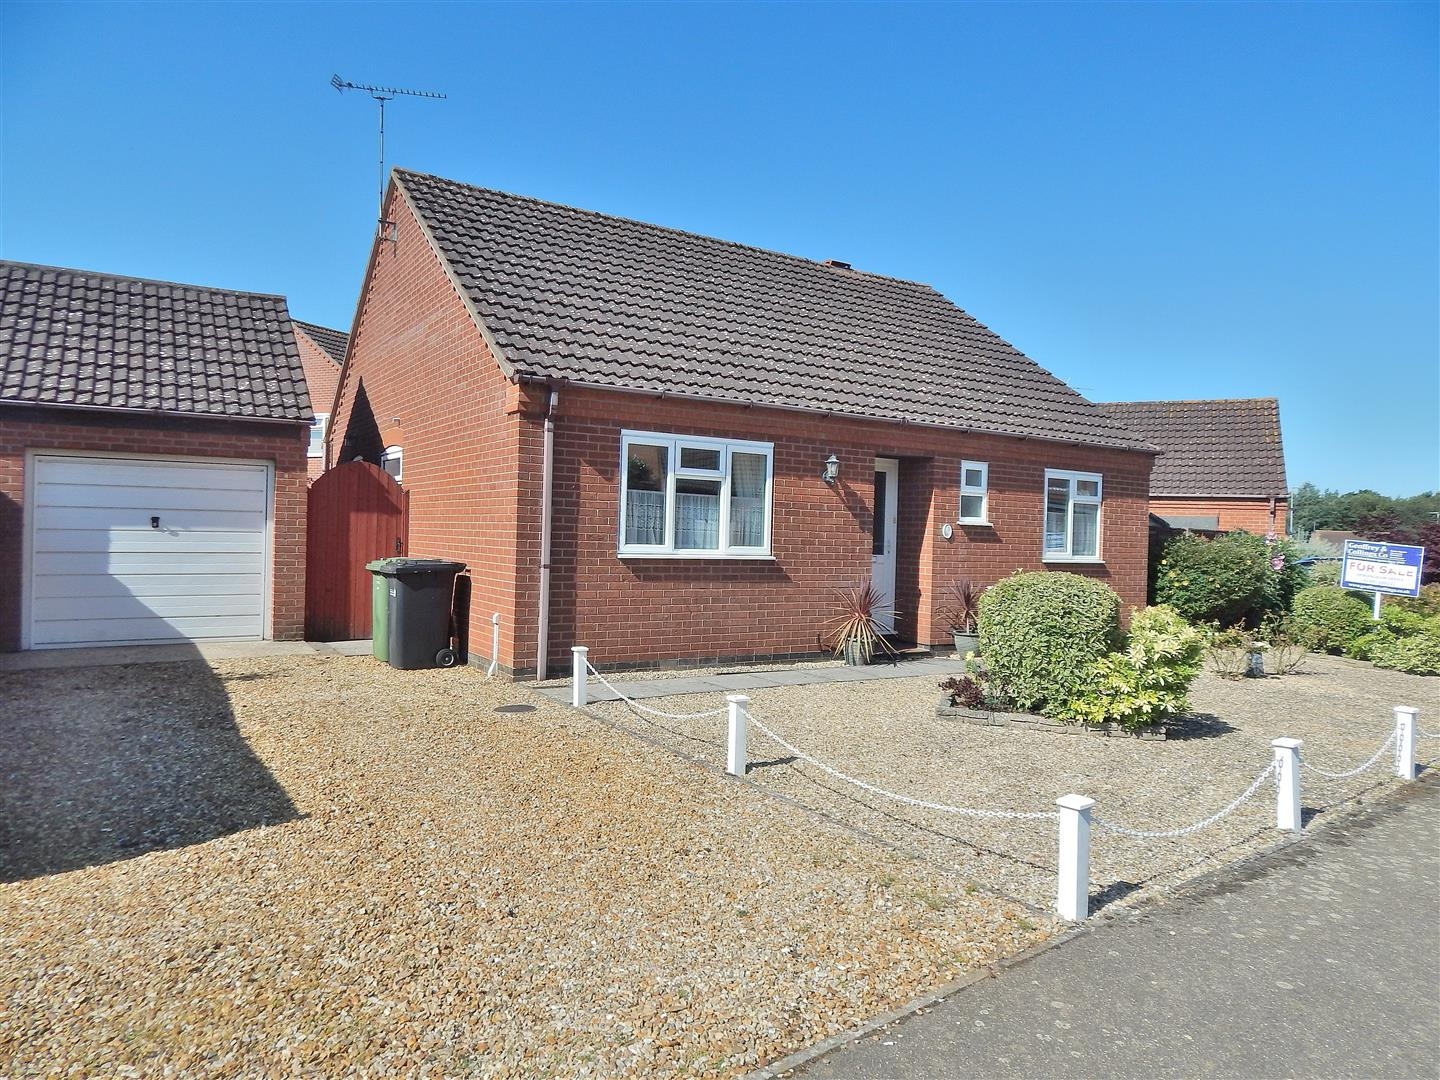 3 bed detached bungalow for sale in King's Lynn, PE31 6UY  - Property Image 1